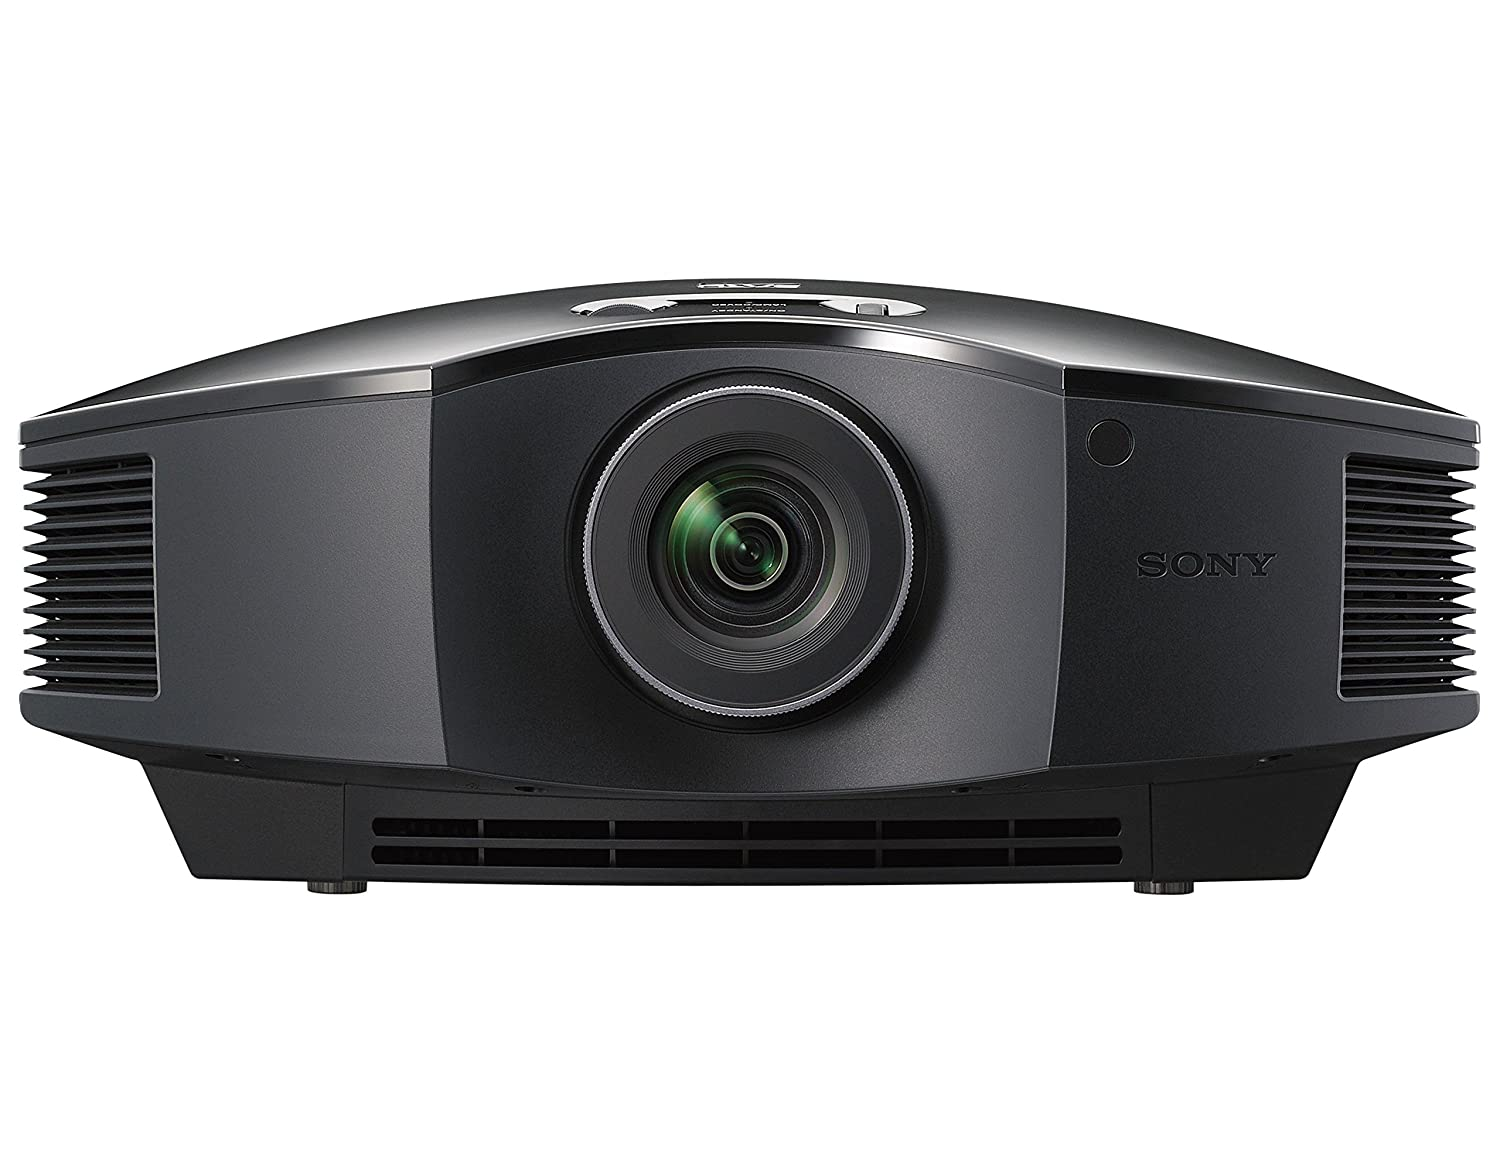 Sony VPLHW45ES 1080p 3D SXRD Home Theater/Gaming Projector, Black Sony Electronics Inc.